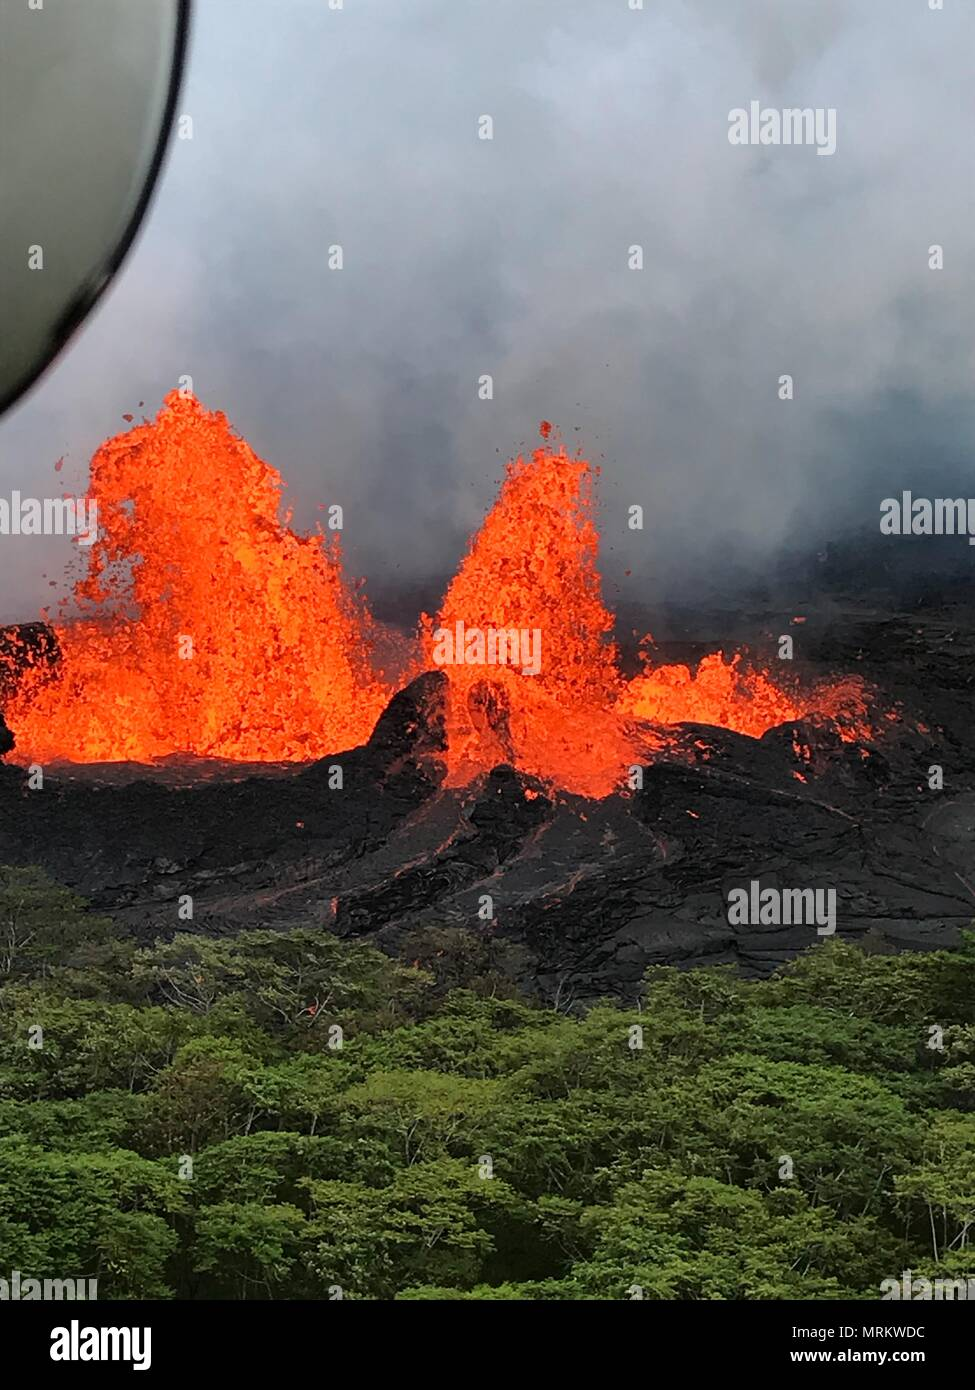 Molten lava spews hundreds of feet into the air at fissure 22 from the eruption of the Kilauea volcano May 21, 2018 in Pahoa, Hawaii. Stock Photo